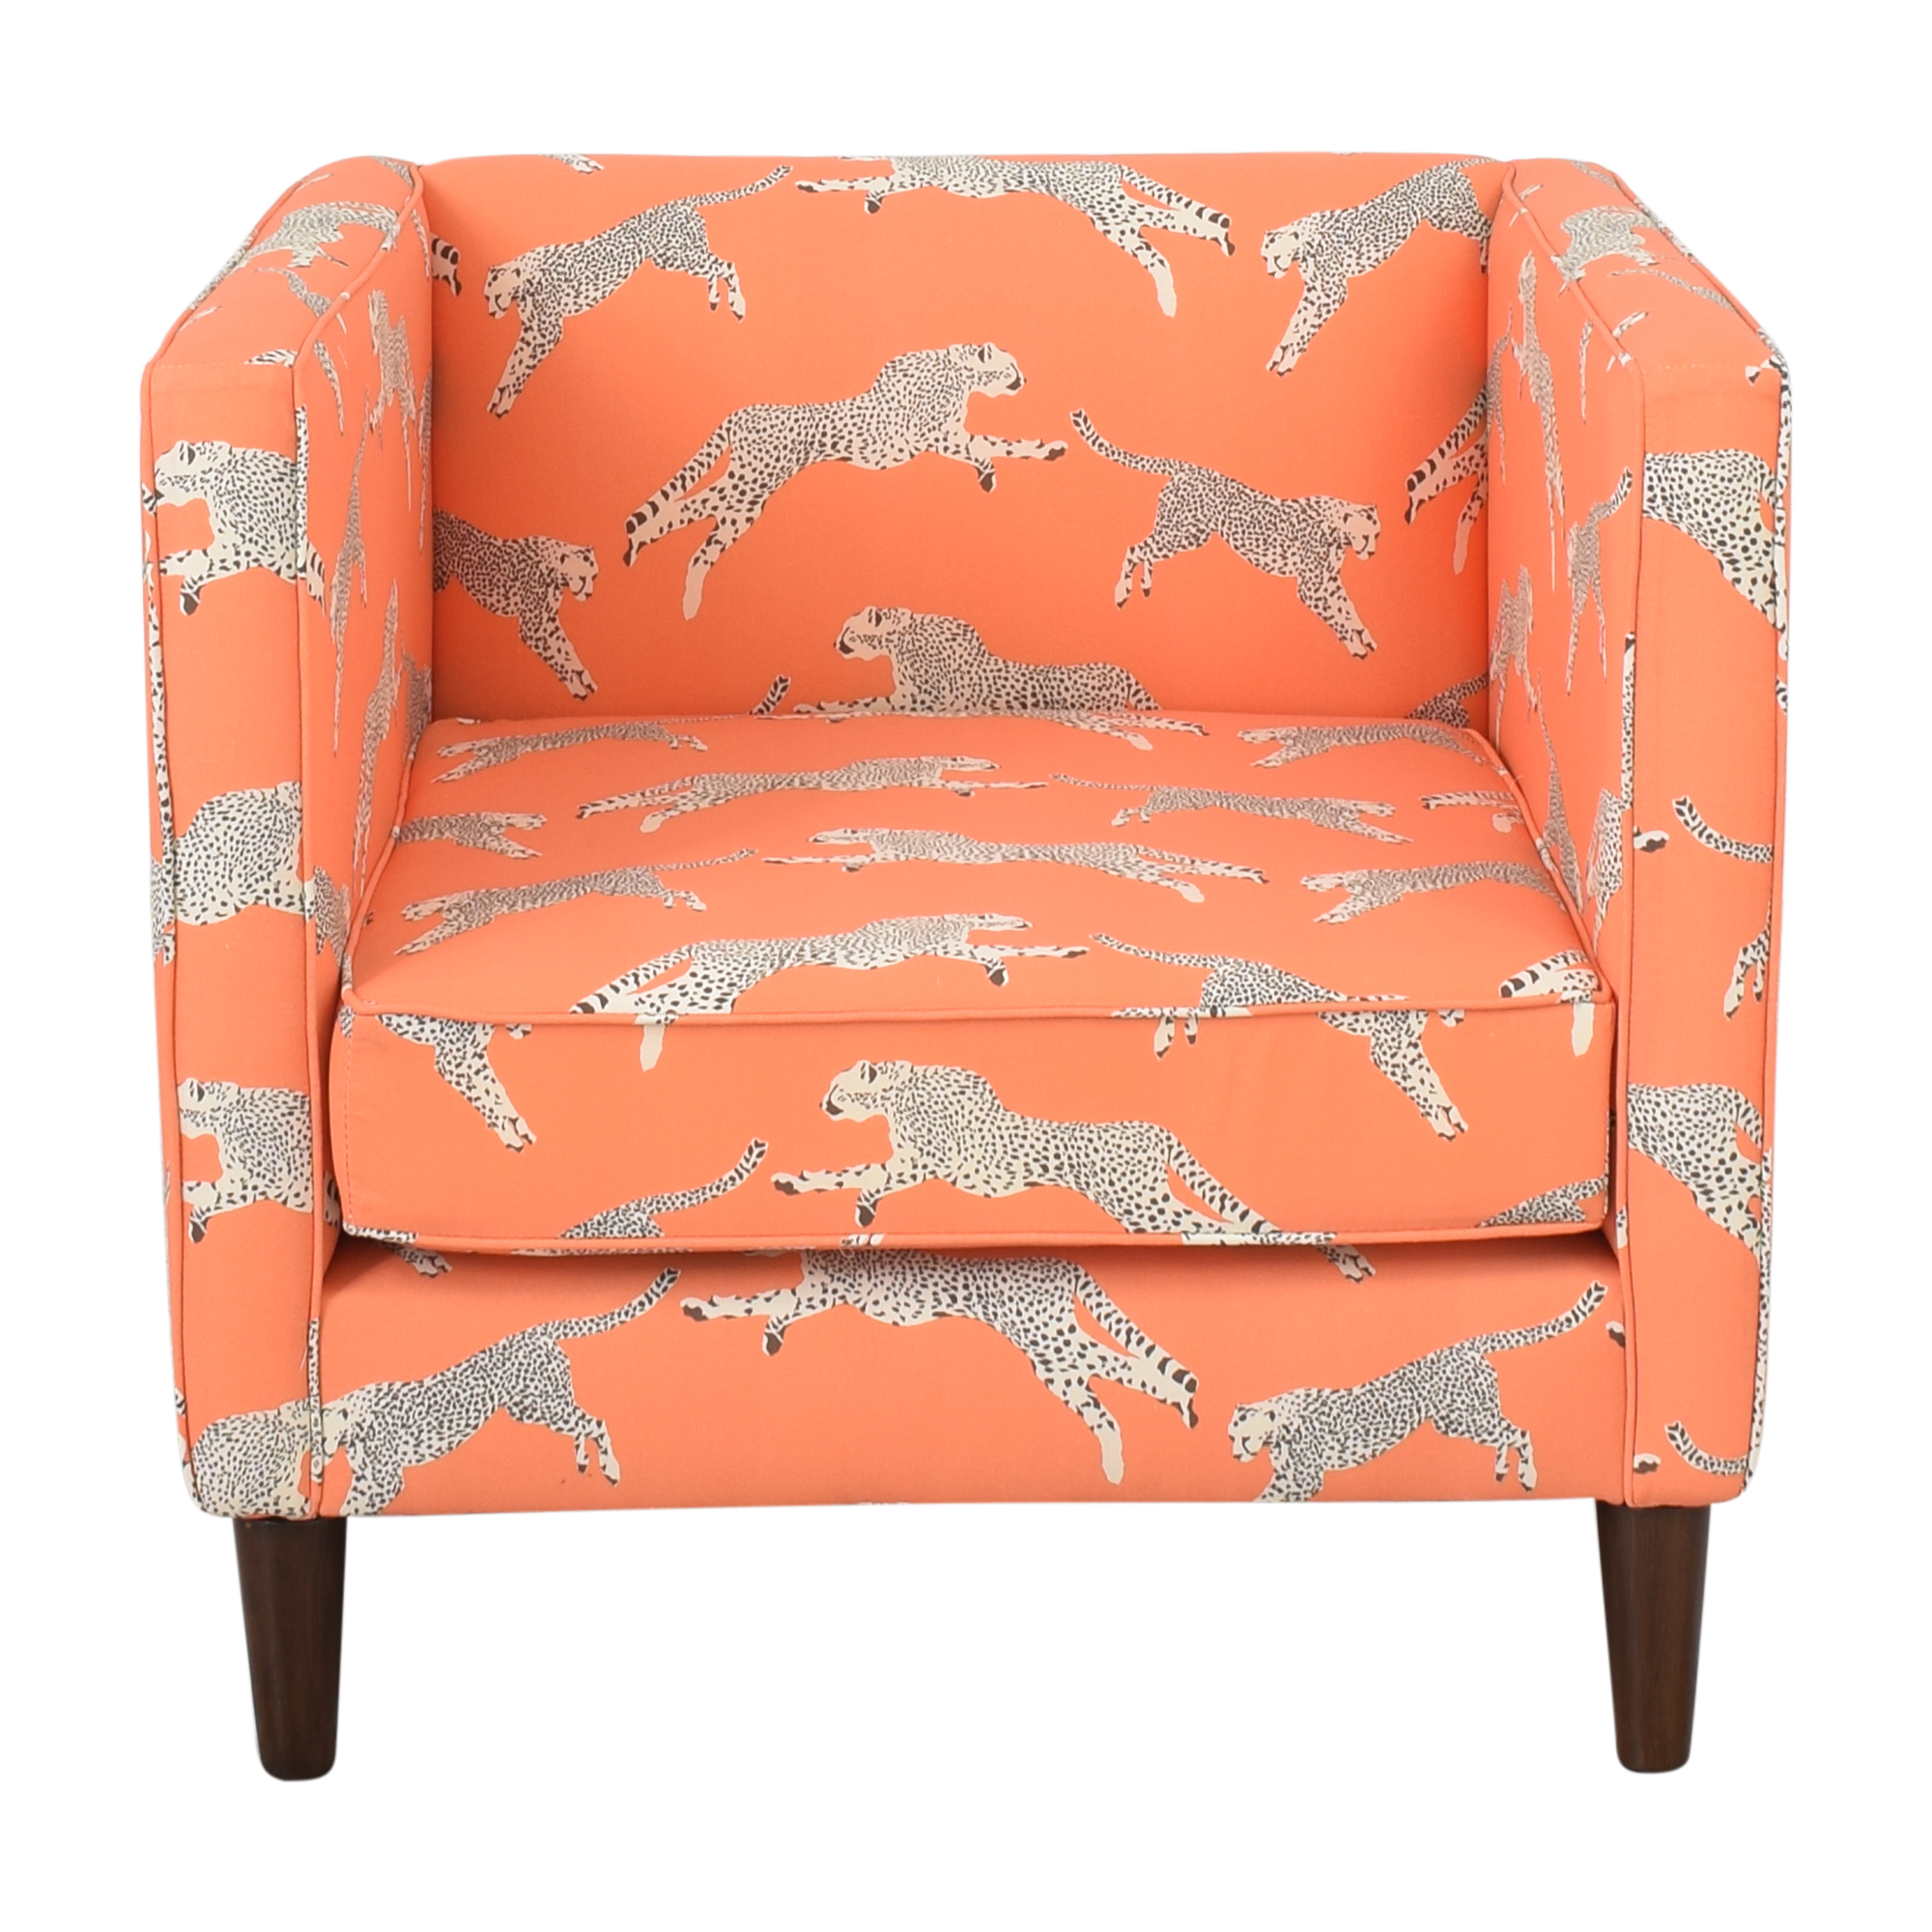 The Inside The Inside Tuxedo Chair in Coral Zebra by Scalamandre price